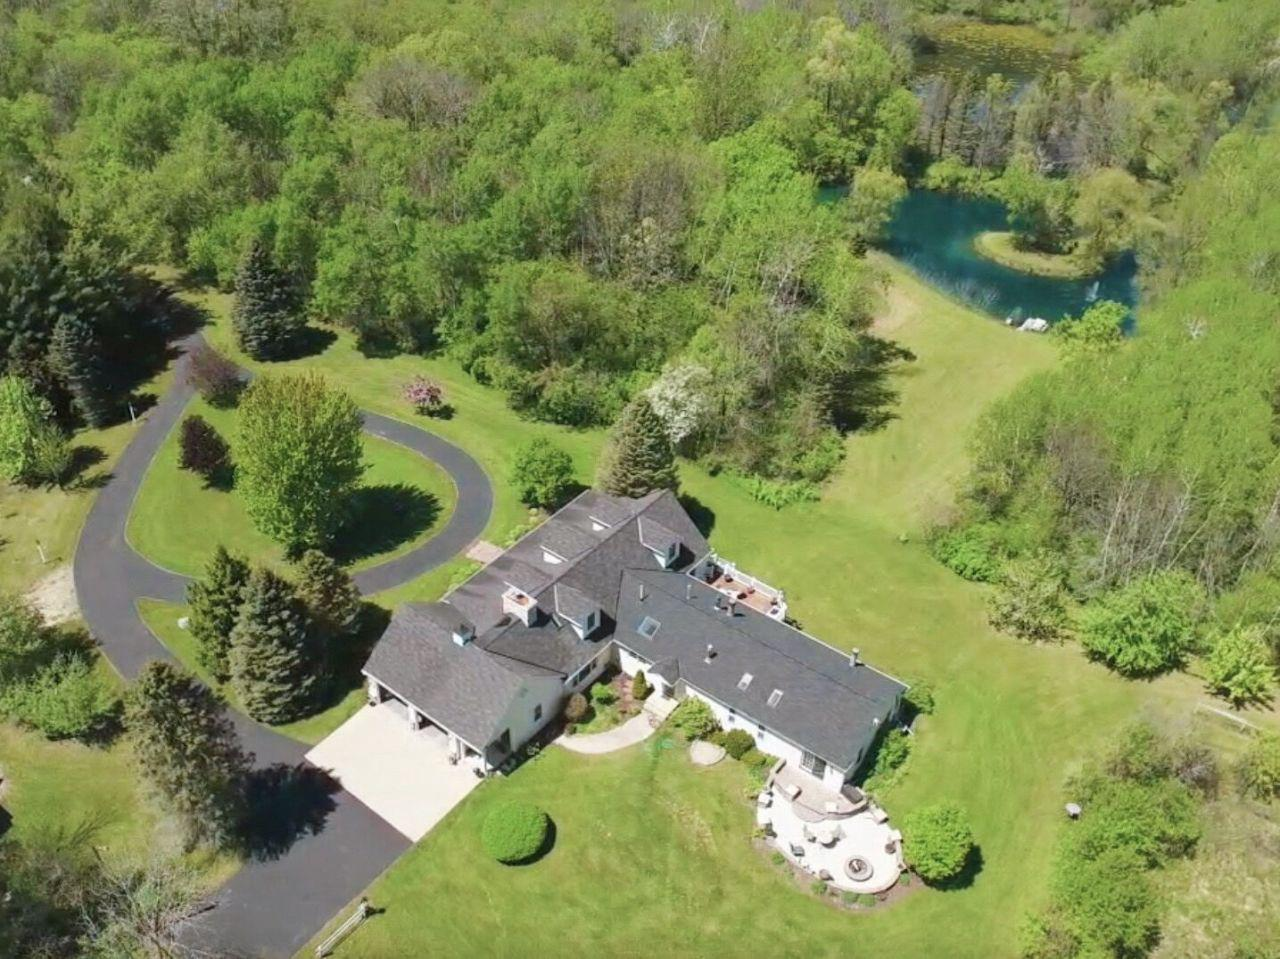 This spectacular property of almost 20 acres is nestled in pristine woods & surrounded by water. This 5,000+ sq ft home is closer than you think...15 min from Cedarburg, 30 min from Kohler's magnificent golfing. Featuring 600+ ft of Milwaukee River frontage, 1/3 acre pond stocked w/ perch & other pan fish. Wildlife is abundant throughout the property around the corner from Waubedonia Park. The home is spectacular w/ over 1,200 sq ft of living space added in 2001. 1st floor master suite, spectacular master BA w/ sauna, multiple fireplaces, walk-out LL w/ guest suite & 2nd KIT, multiple outbuildings including a 4 car heated GA w/ finished living area above. Too many extra amenities to mention, pictures don't do it justice. This is a must see home & property. Close to Road America!